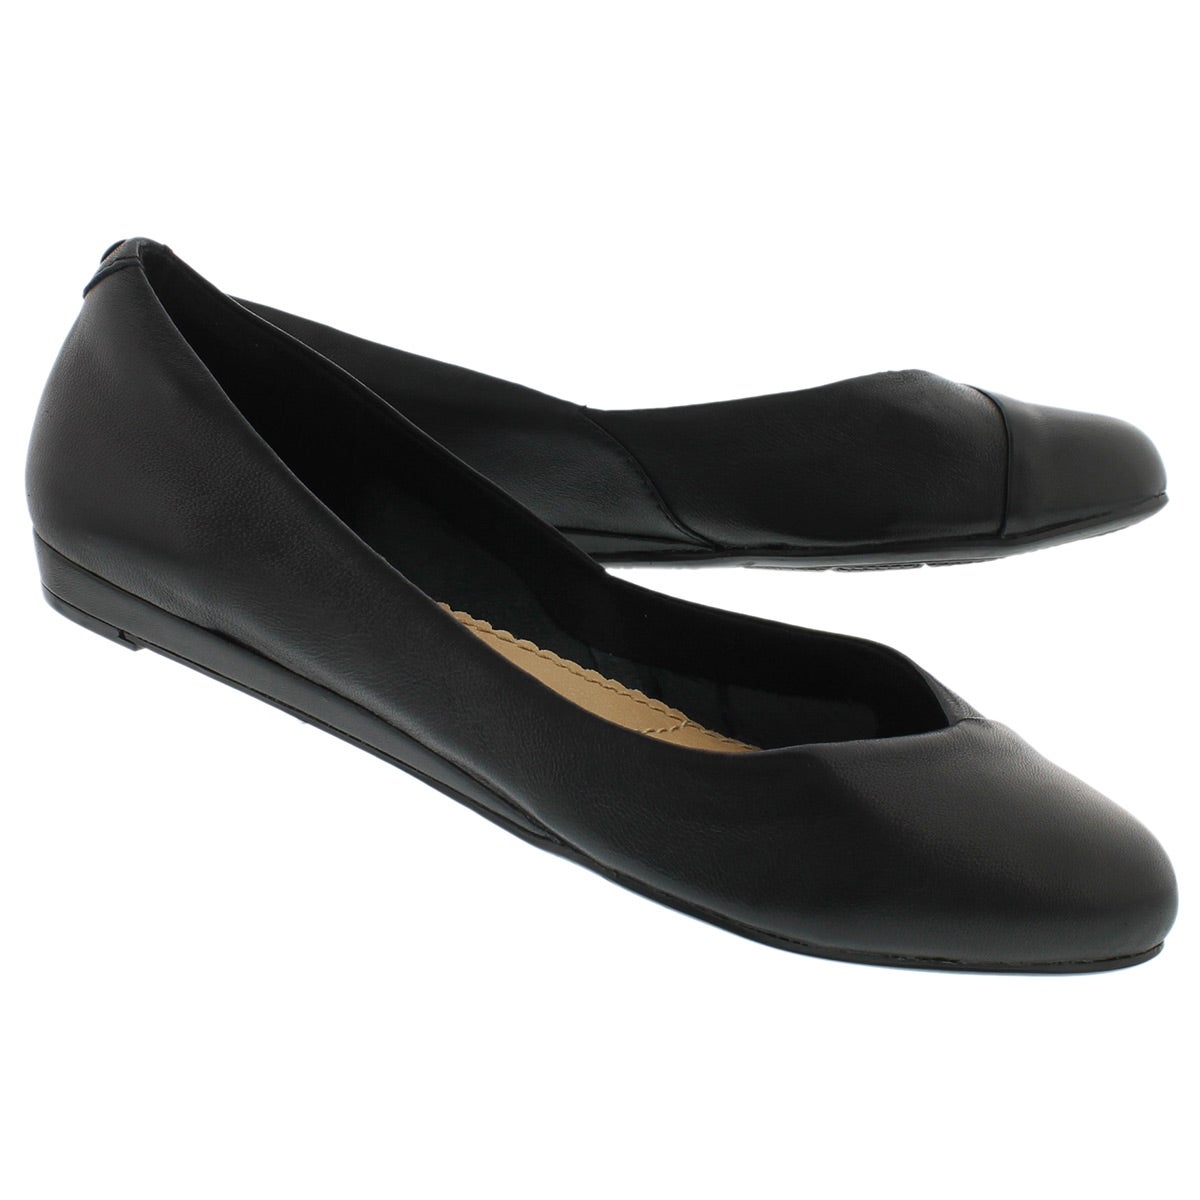 Lds Lumi Ballentine blk lthr dress flat